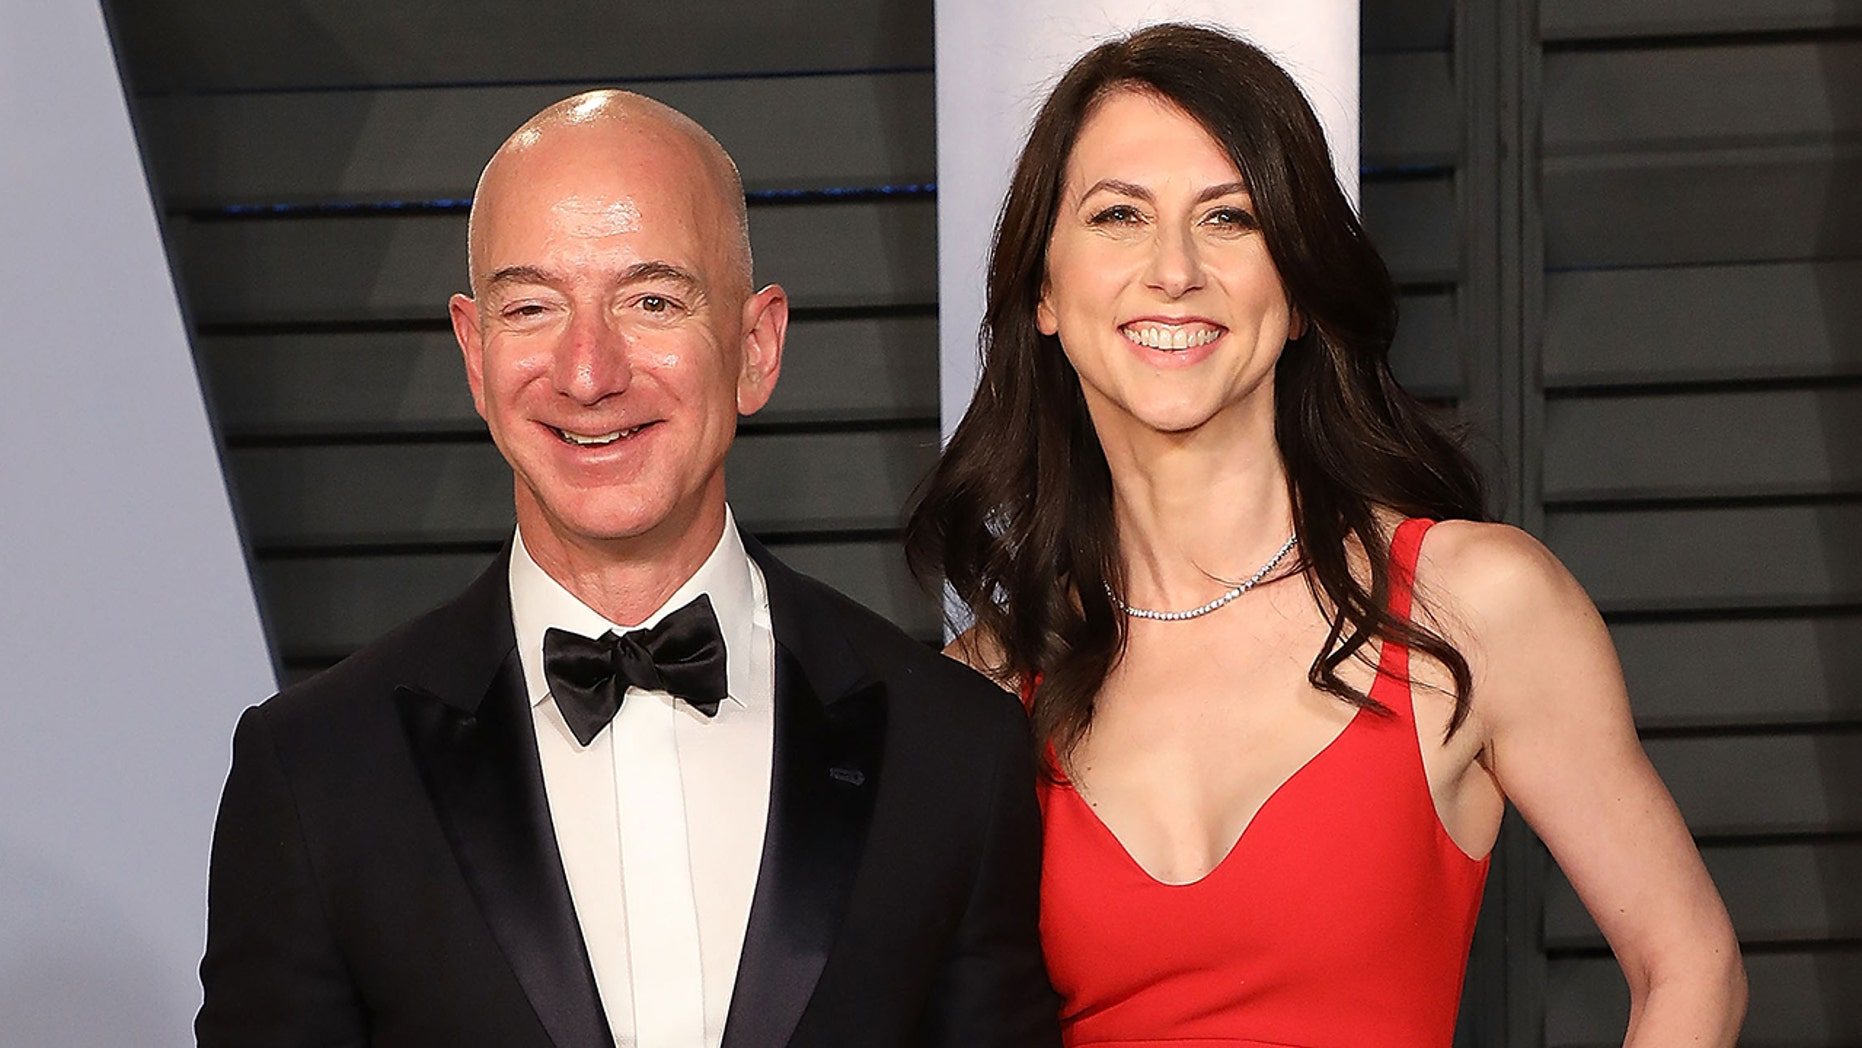 Bezos divorce agreement reduces Amazon founder's ownership stake by 25 percent